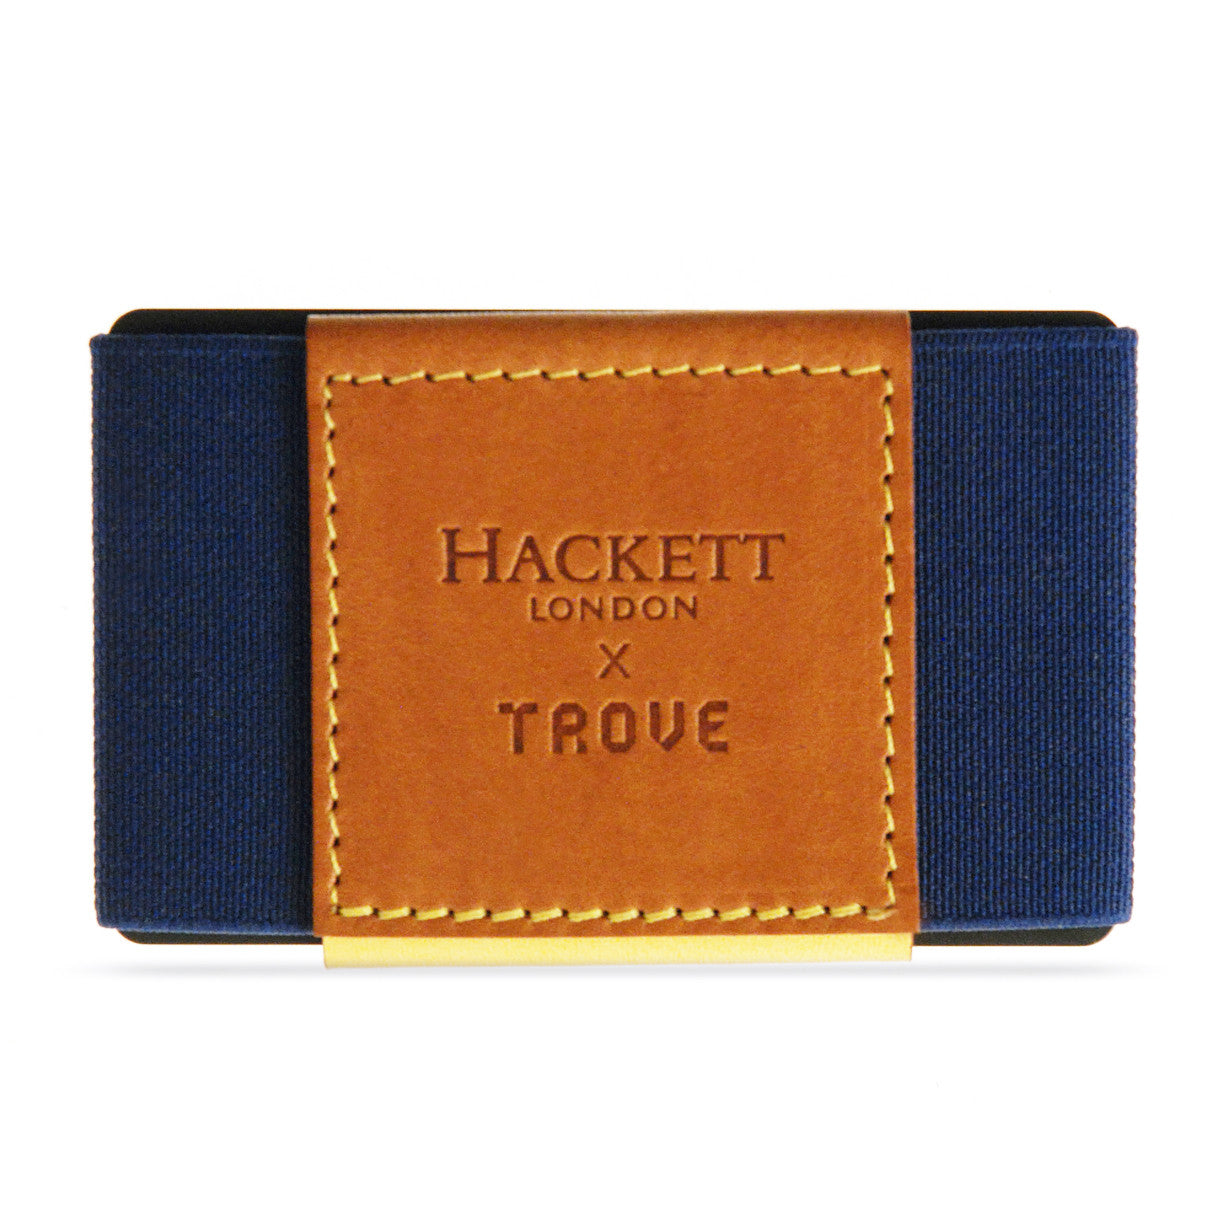 TROVE Wallet: Hackett London x TROVE BLUE Edition - TROVE.CC - 2